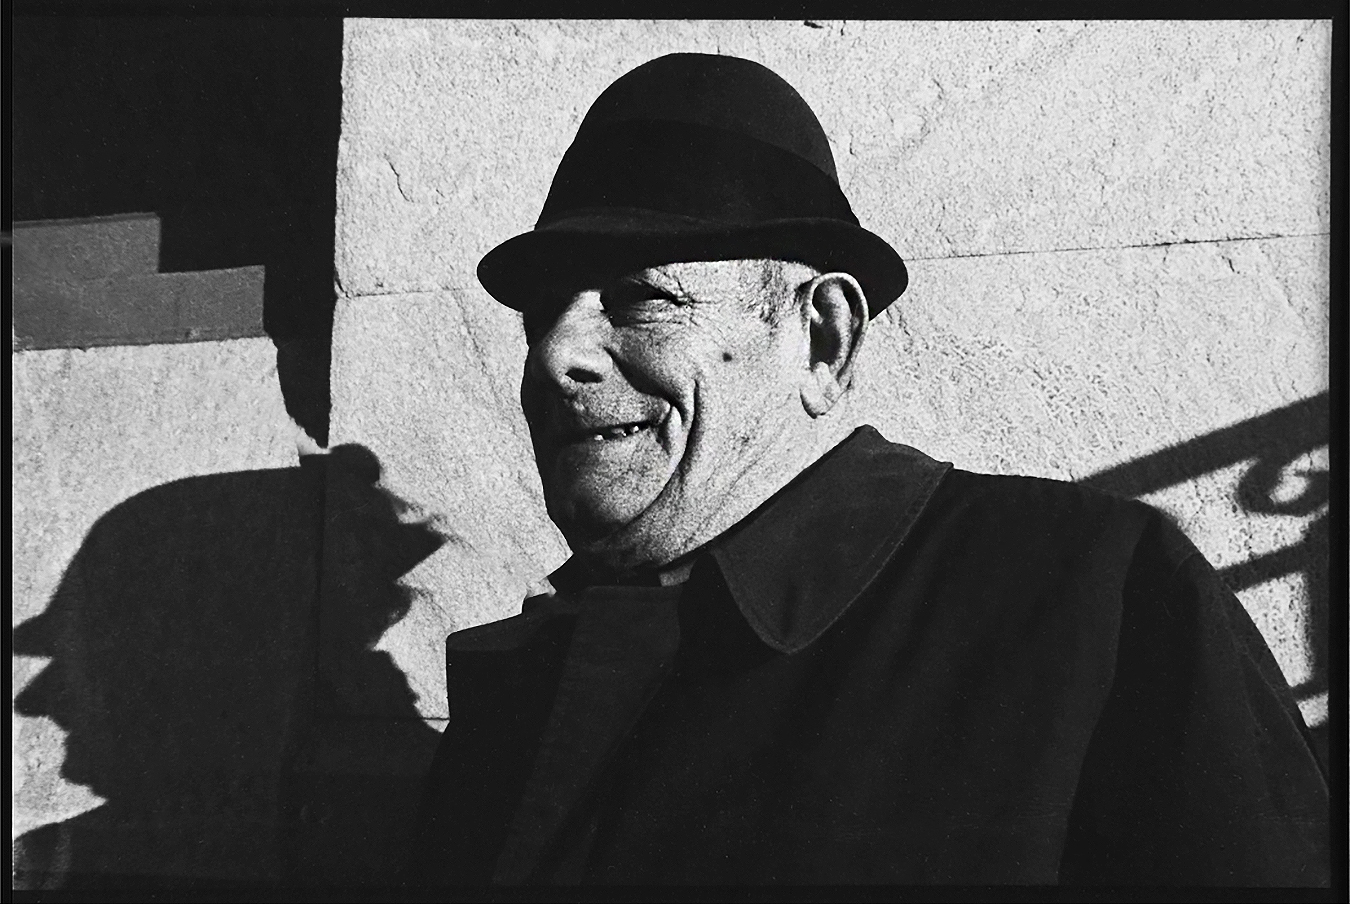 Tony_Ward_Studio_early_work_old_man_with_hat_and_shadow_film_photography_1977